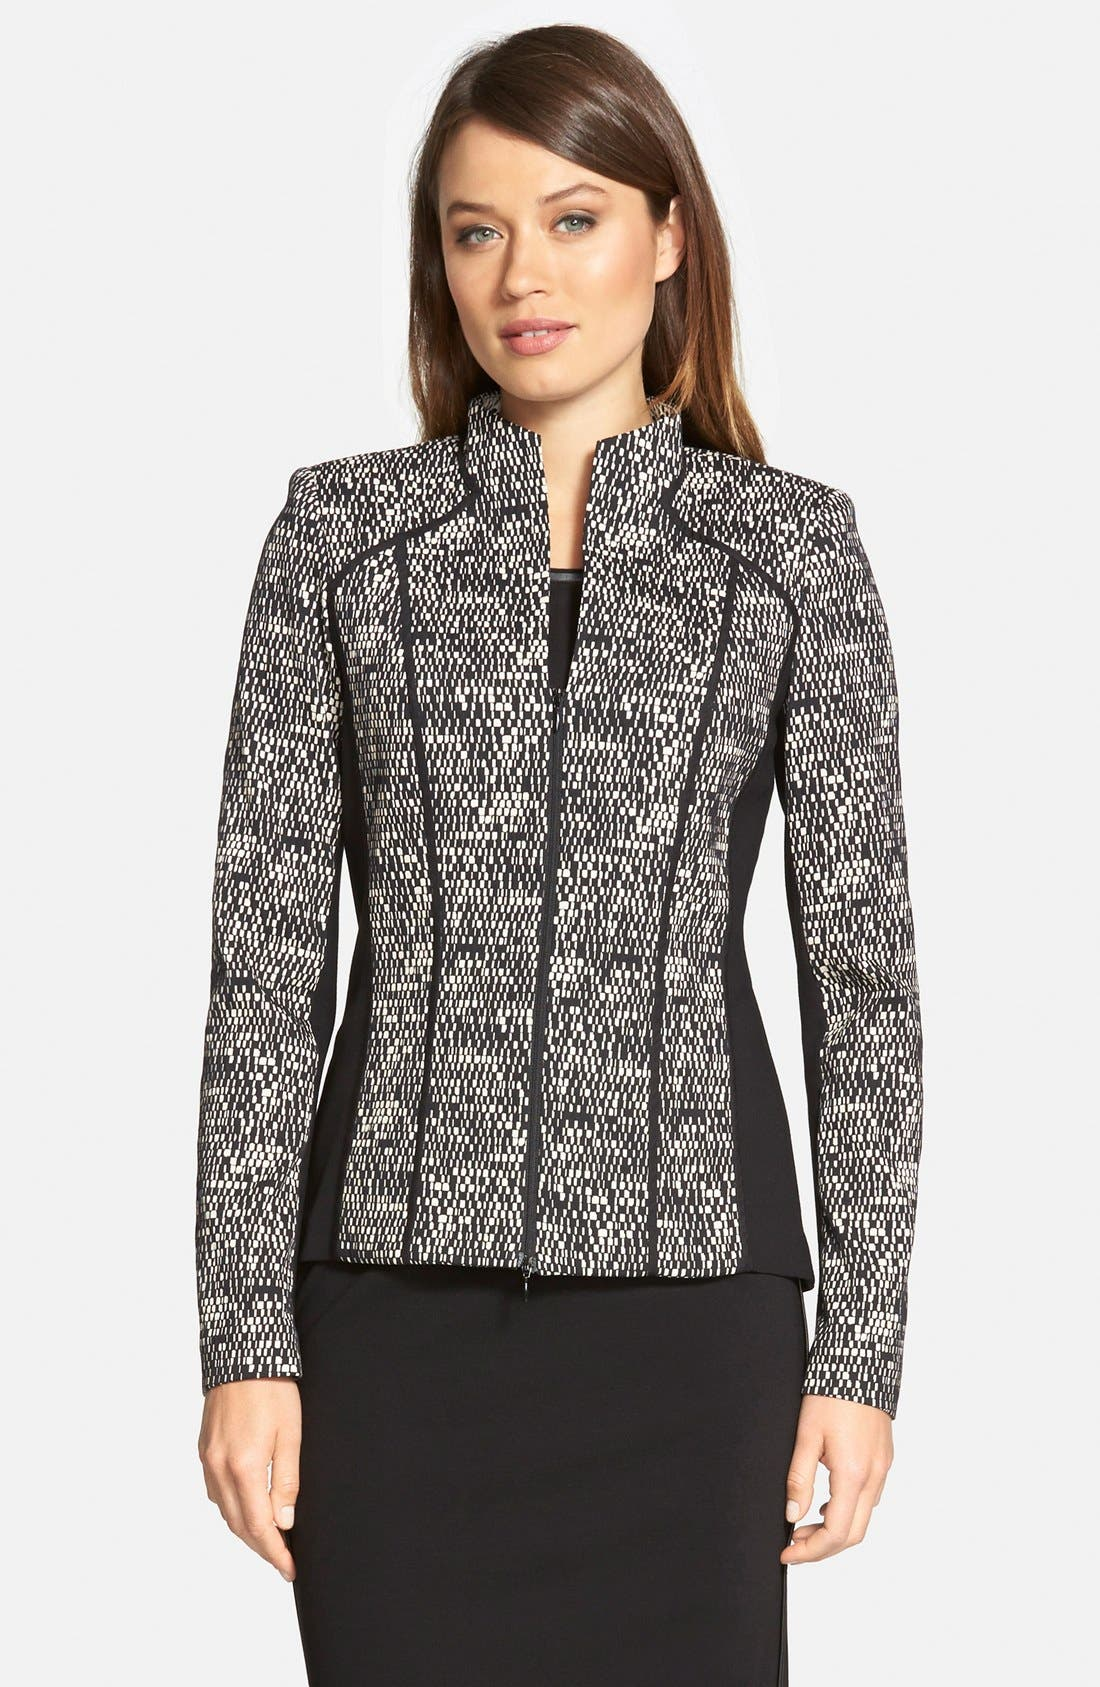 Alternate Image 1 Selected - Lafayette 148 New York 'Amia' Jacket (Regular & Petite)